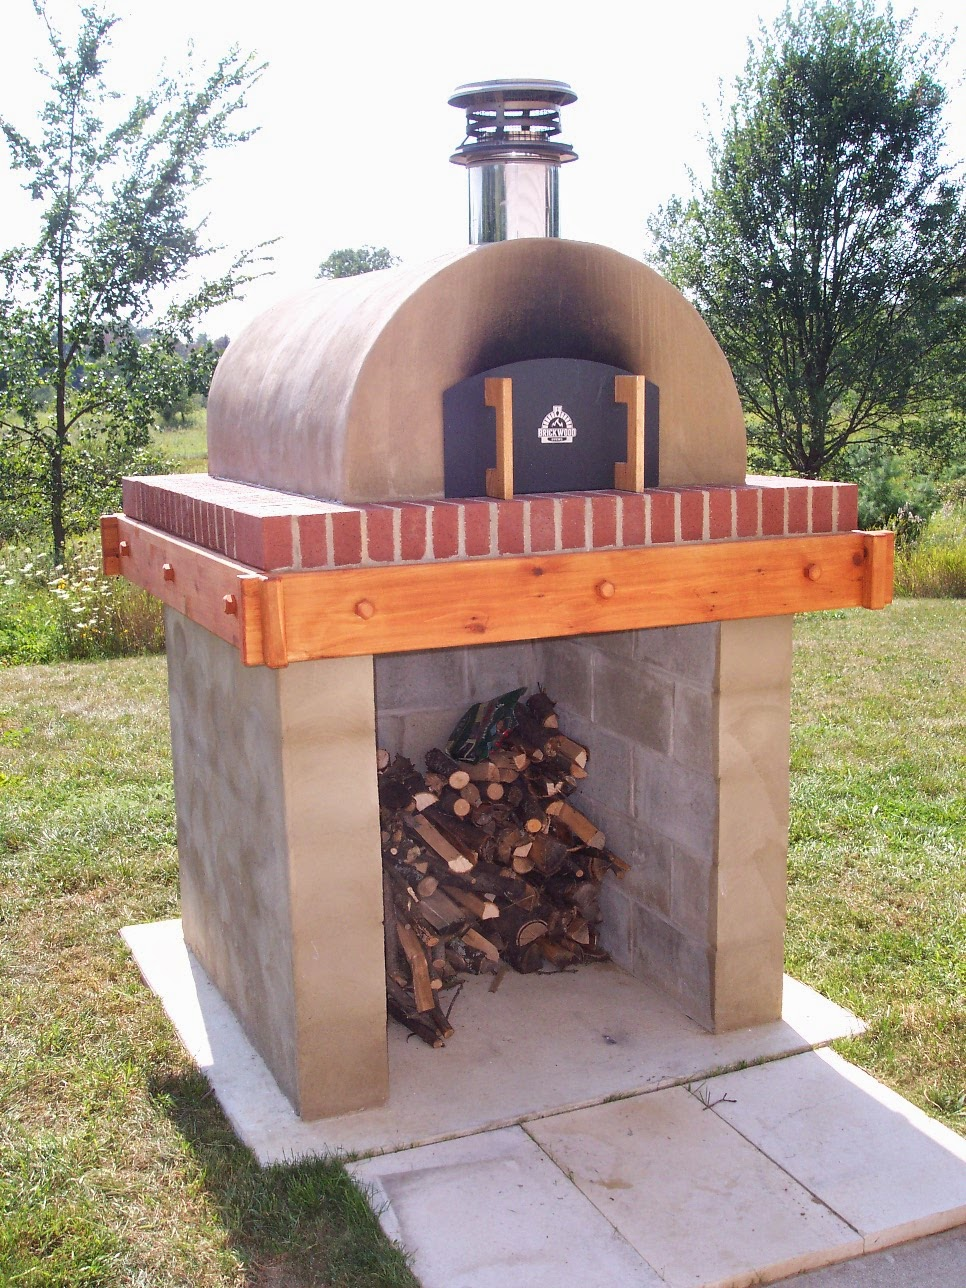 koval u0027s cortile barile wood fired pizza oven in michigan